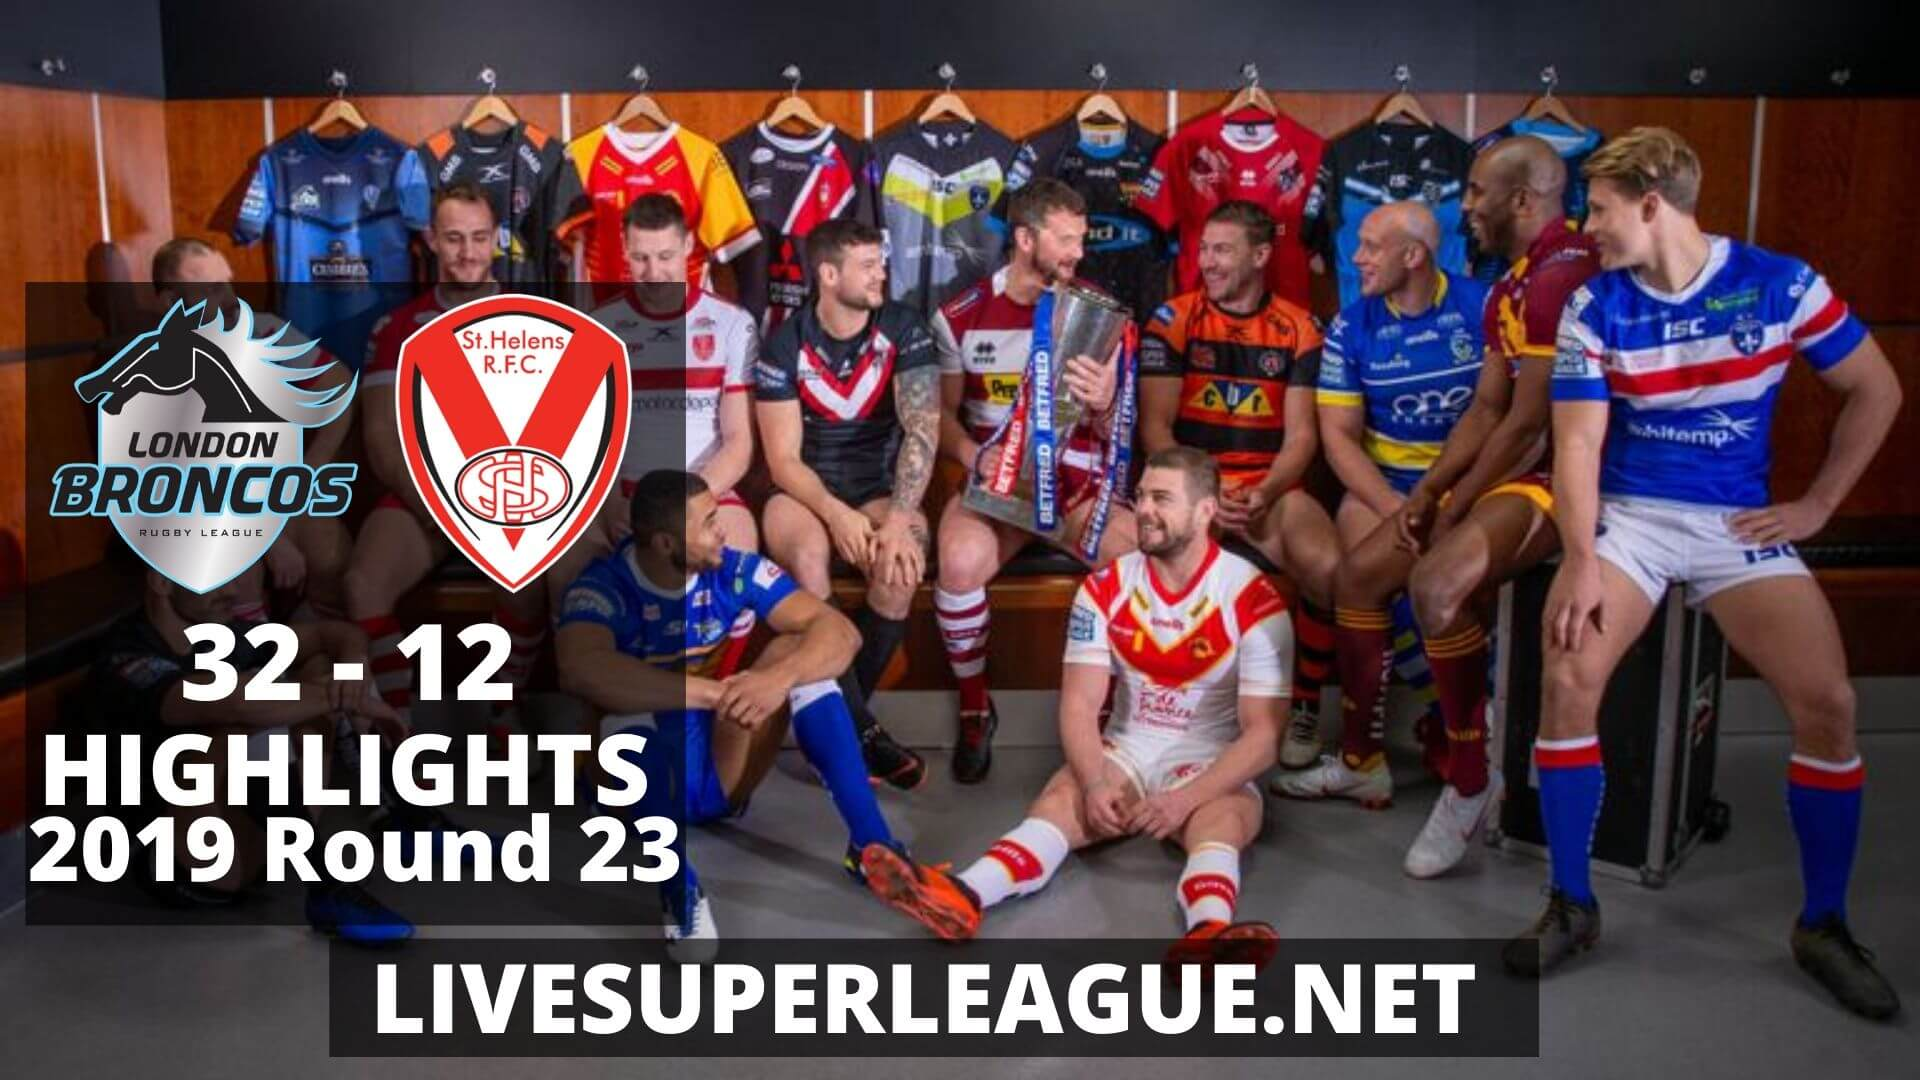 London Broncos Vs St Helens Highlights 2019 Round 23